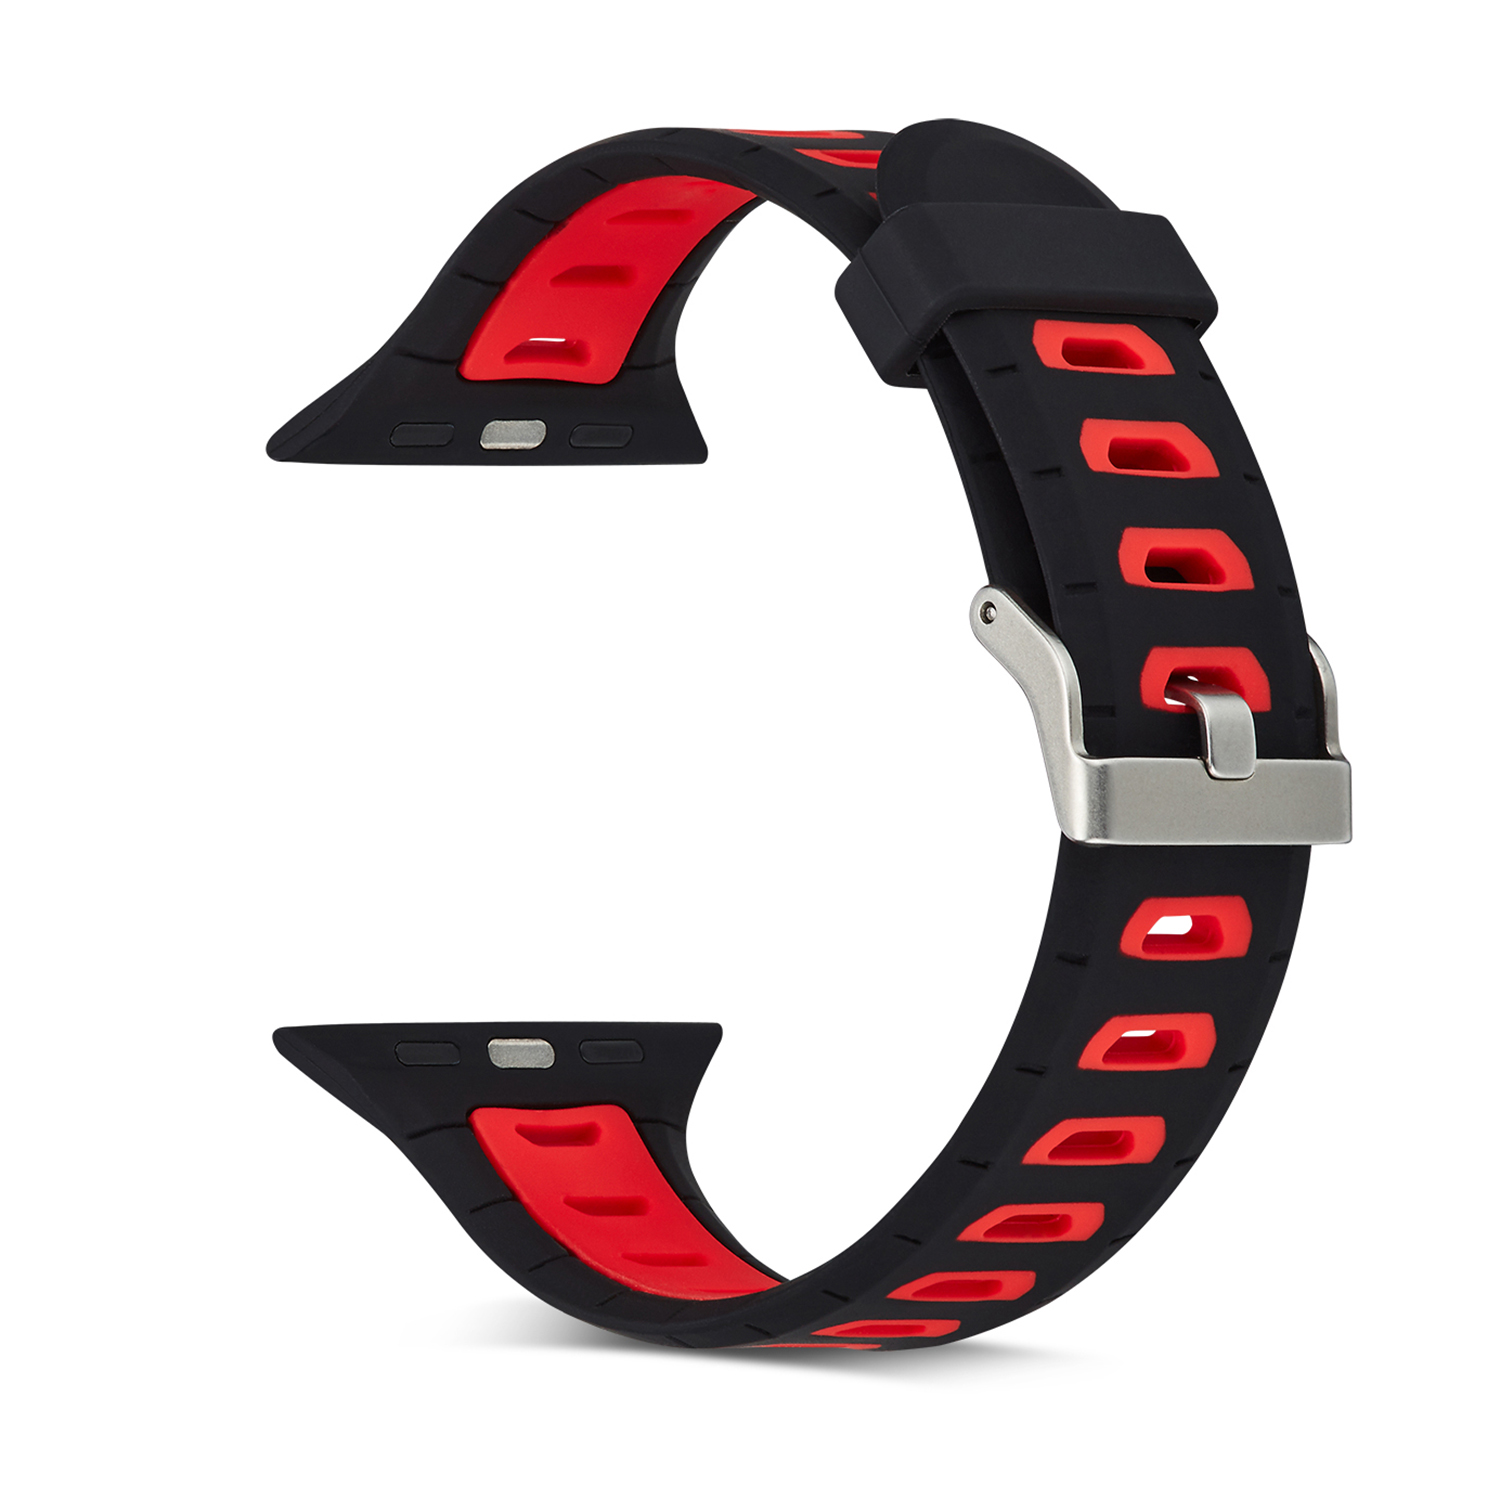 Bakeey Replacement Silicone Watch Band Strap Two-Color Strap for Apple watch1/2/3/4 Smart Watch